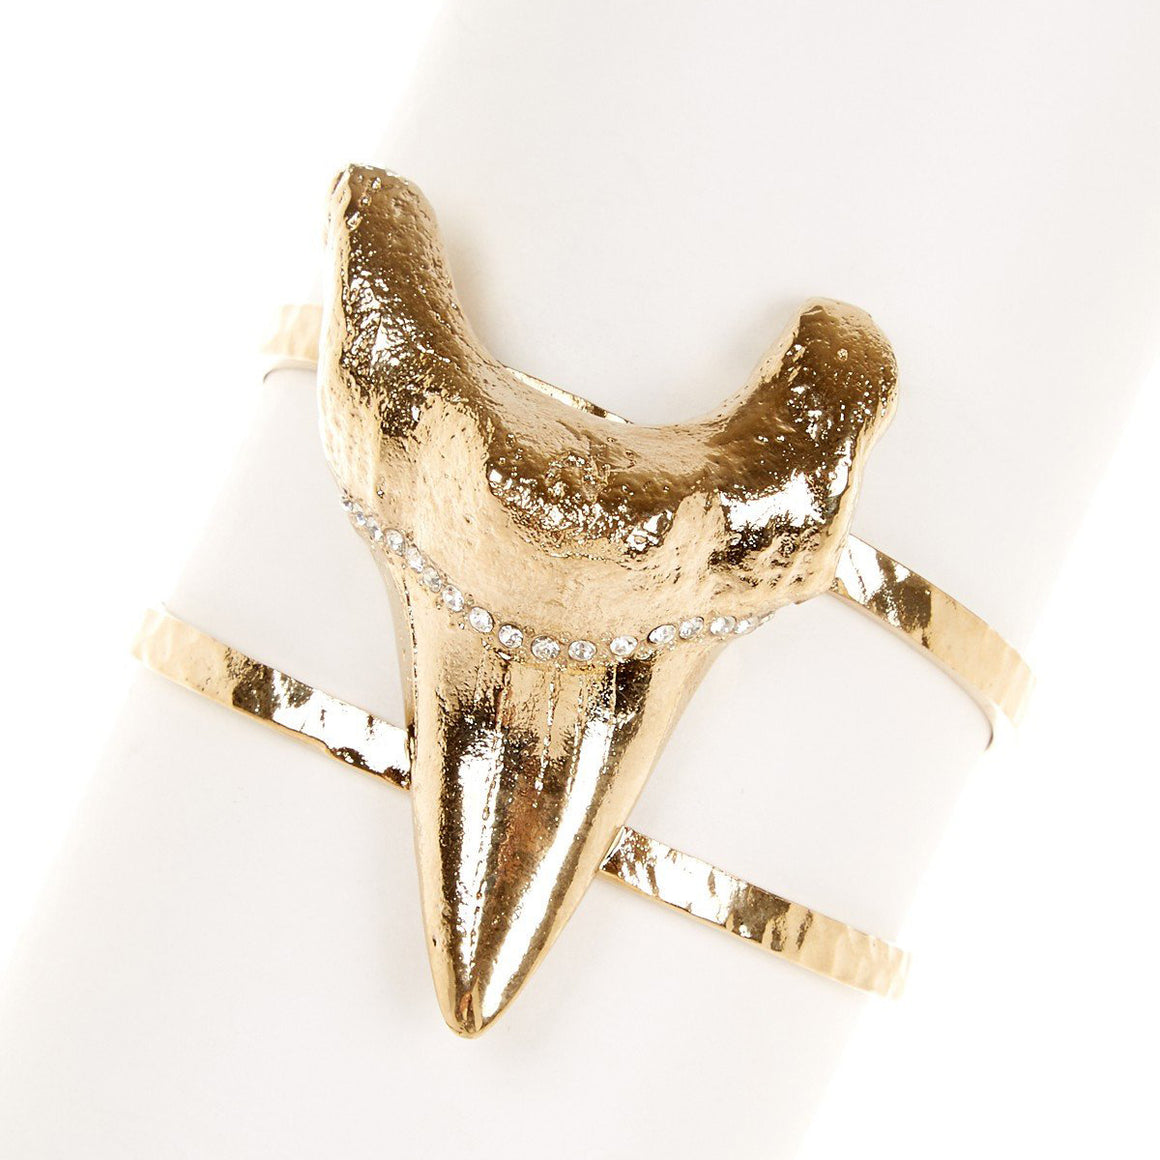 SKOVA Shark Tooth Cuff